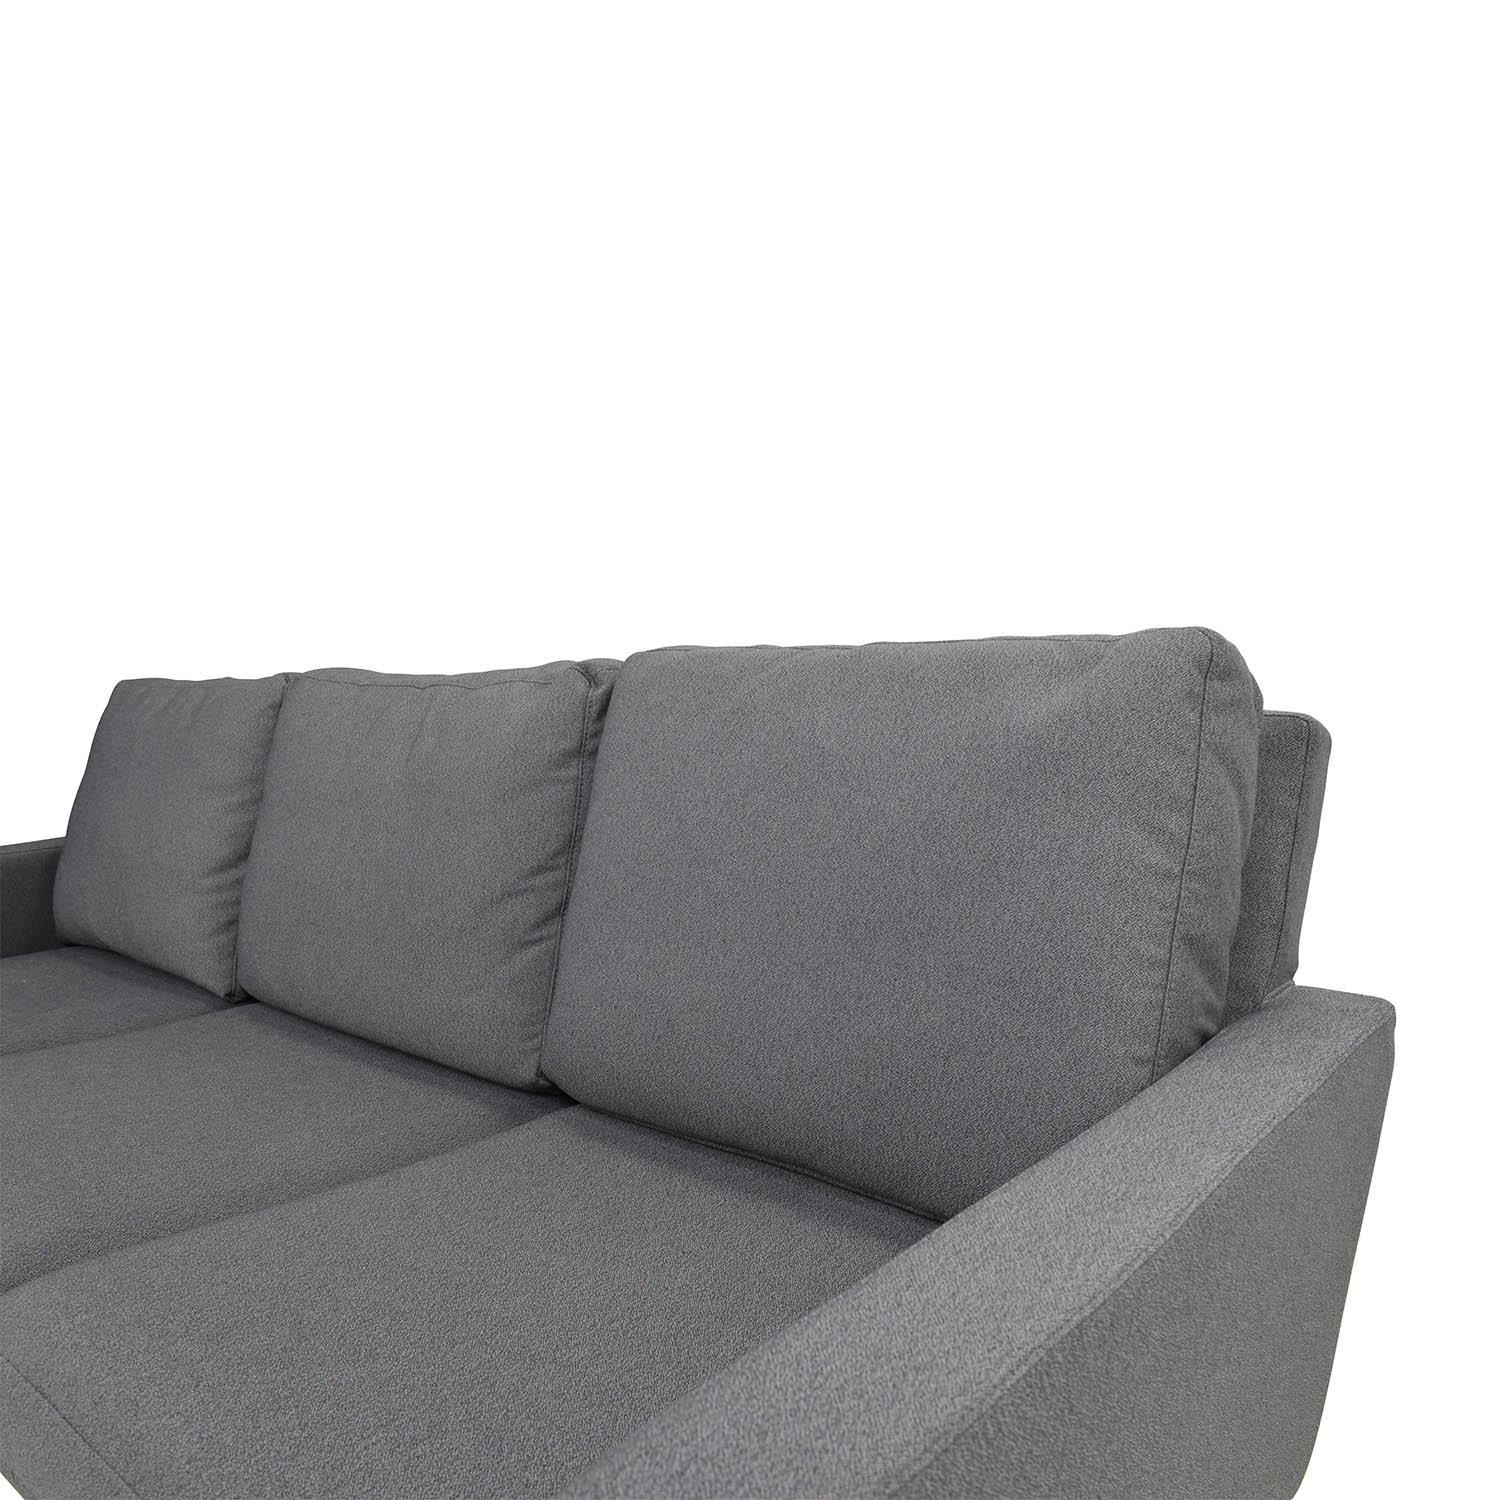 ... Design Within Reach Raleigh Sofa / Sofas